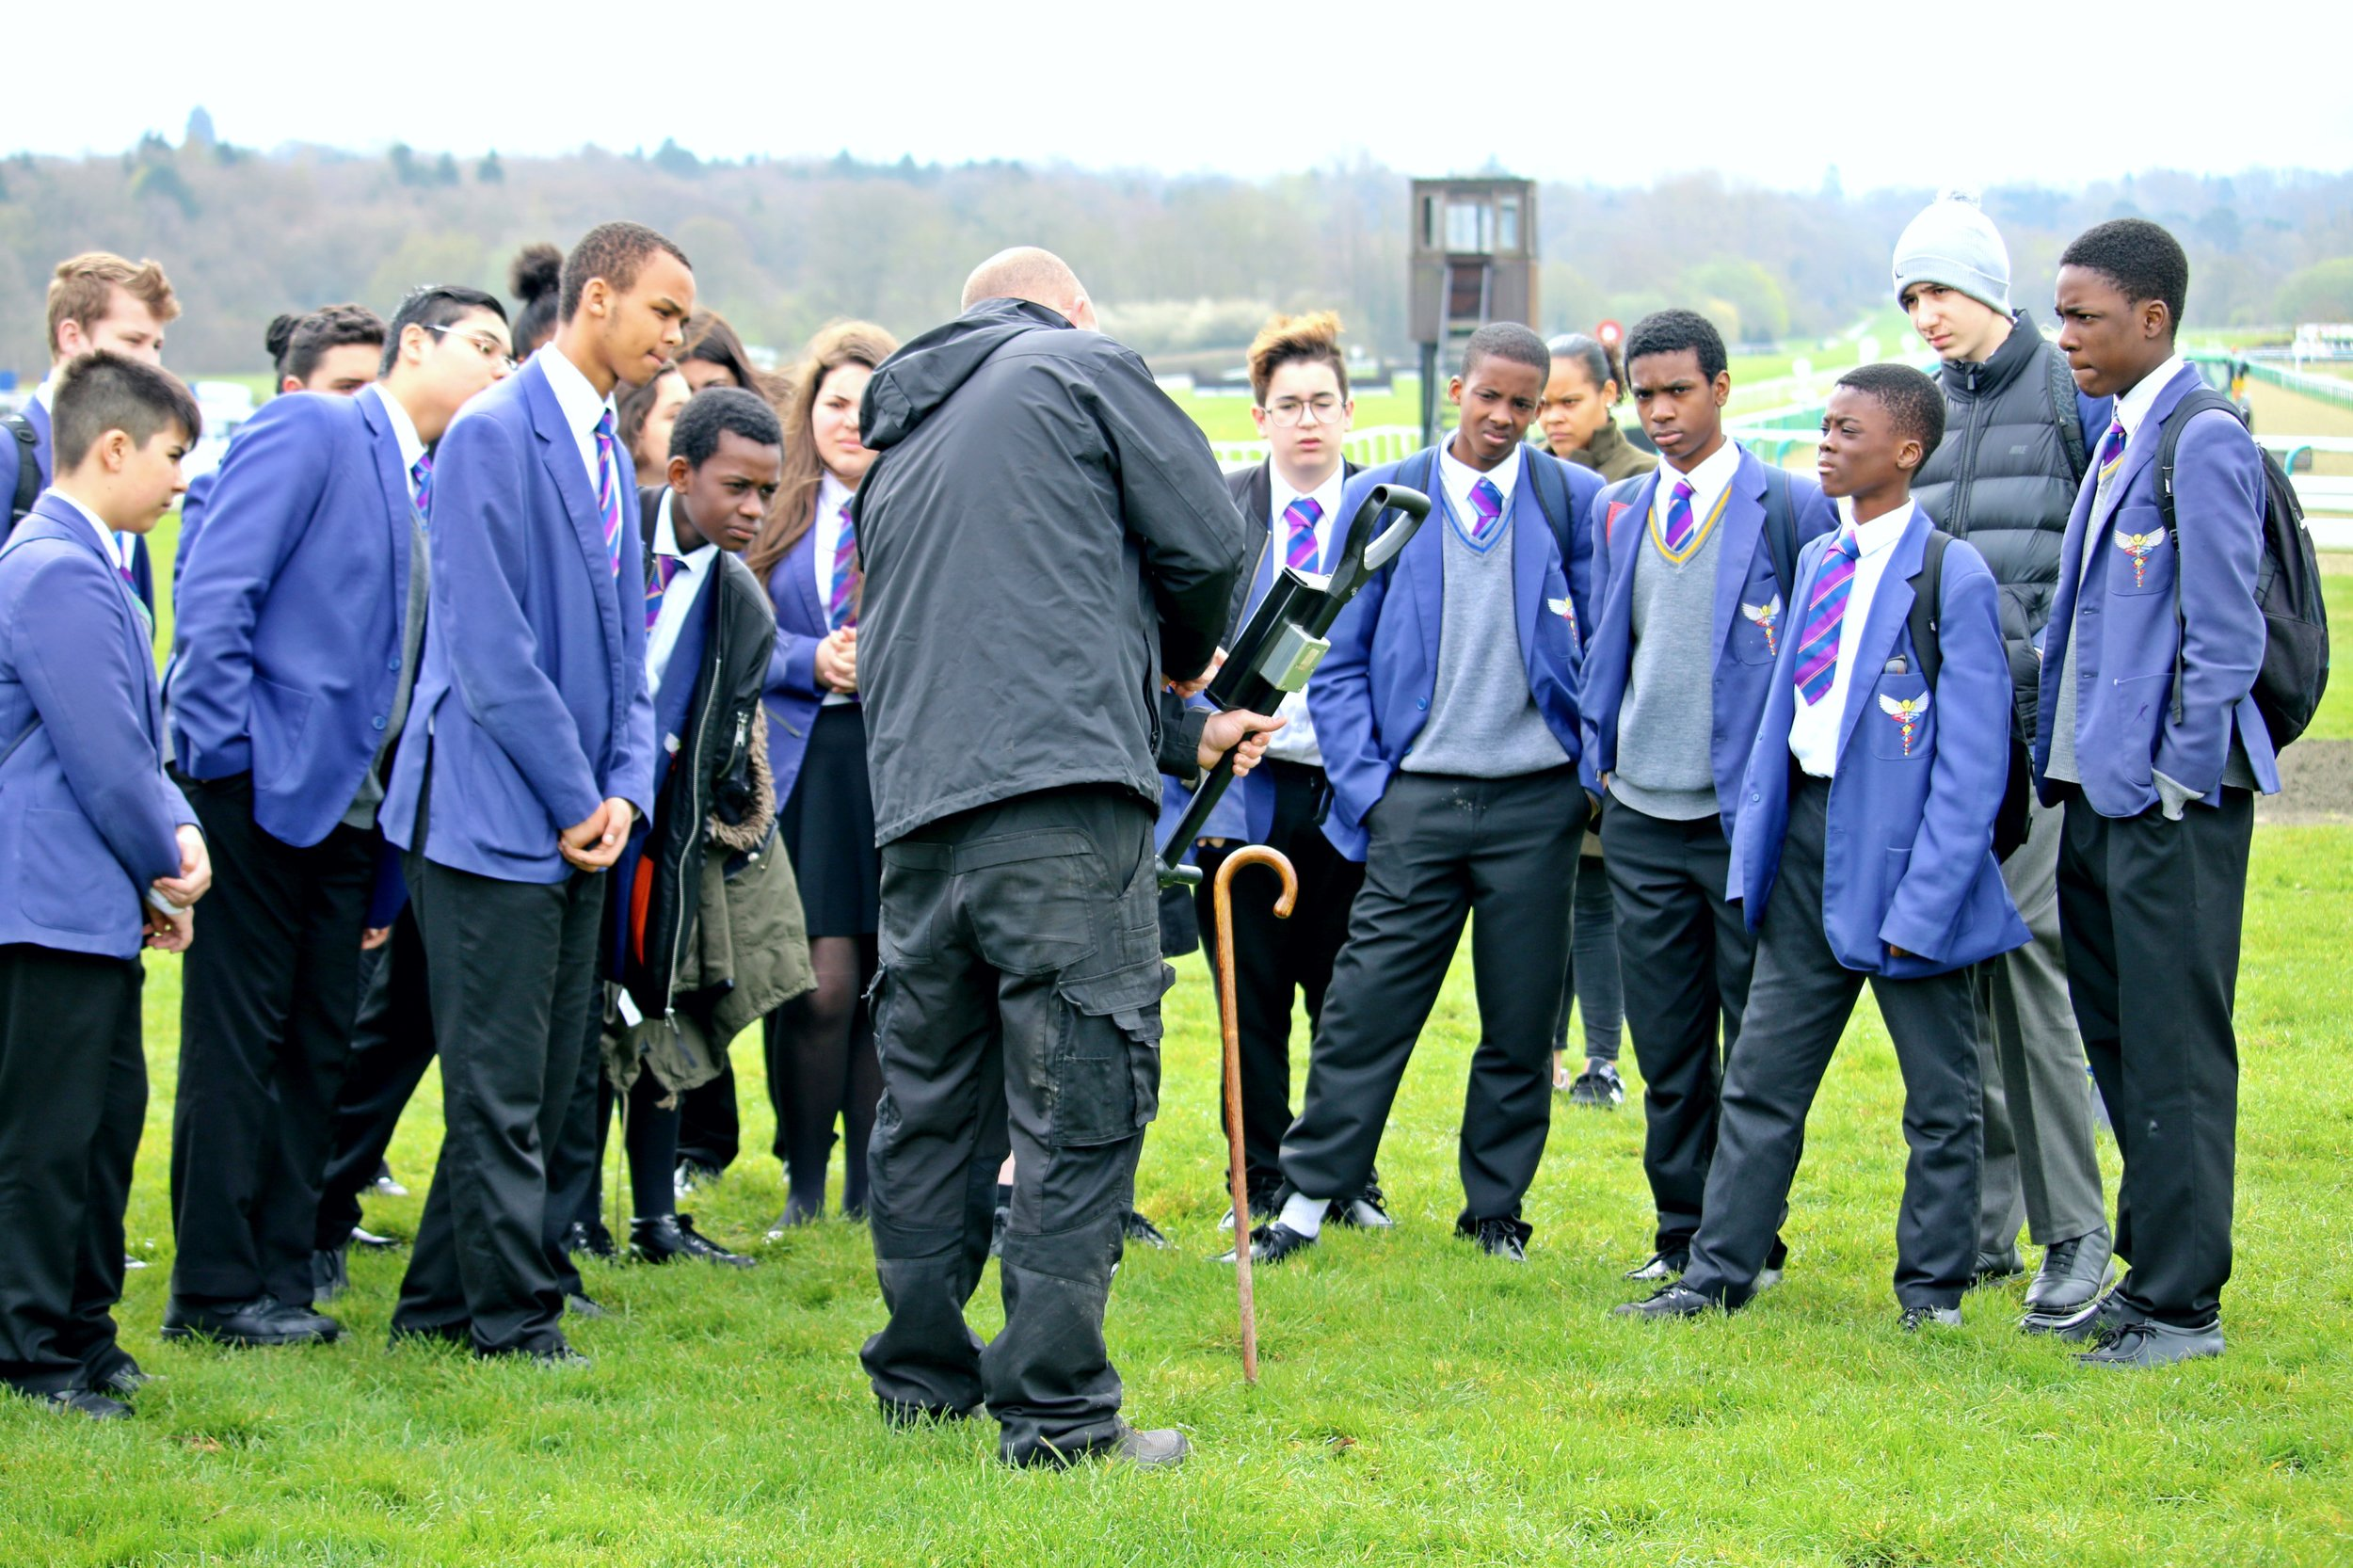 Lambeth group visit Lingfield Park to learn about careers at the resort